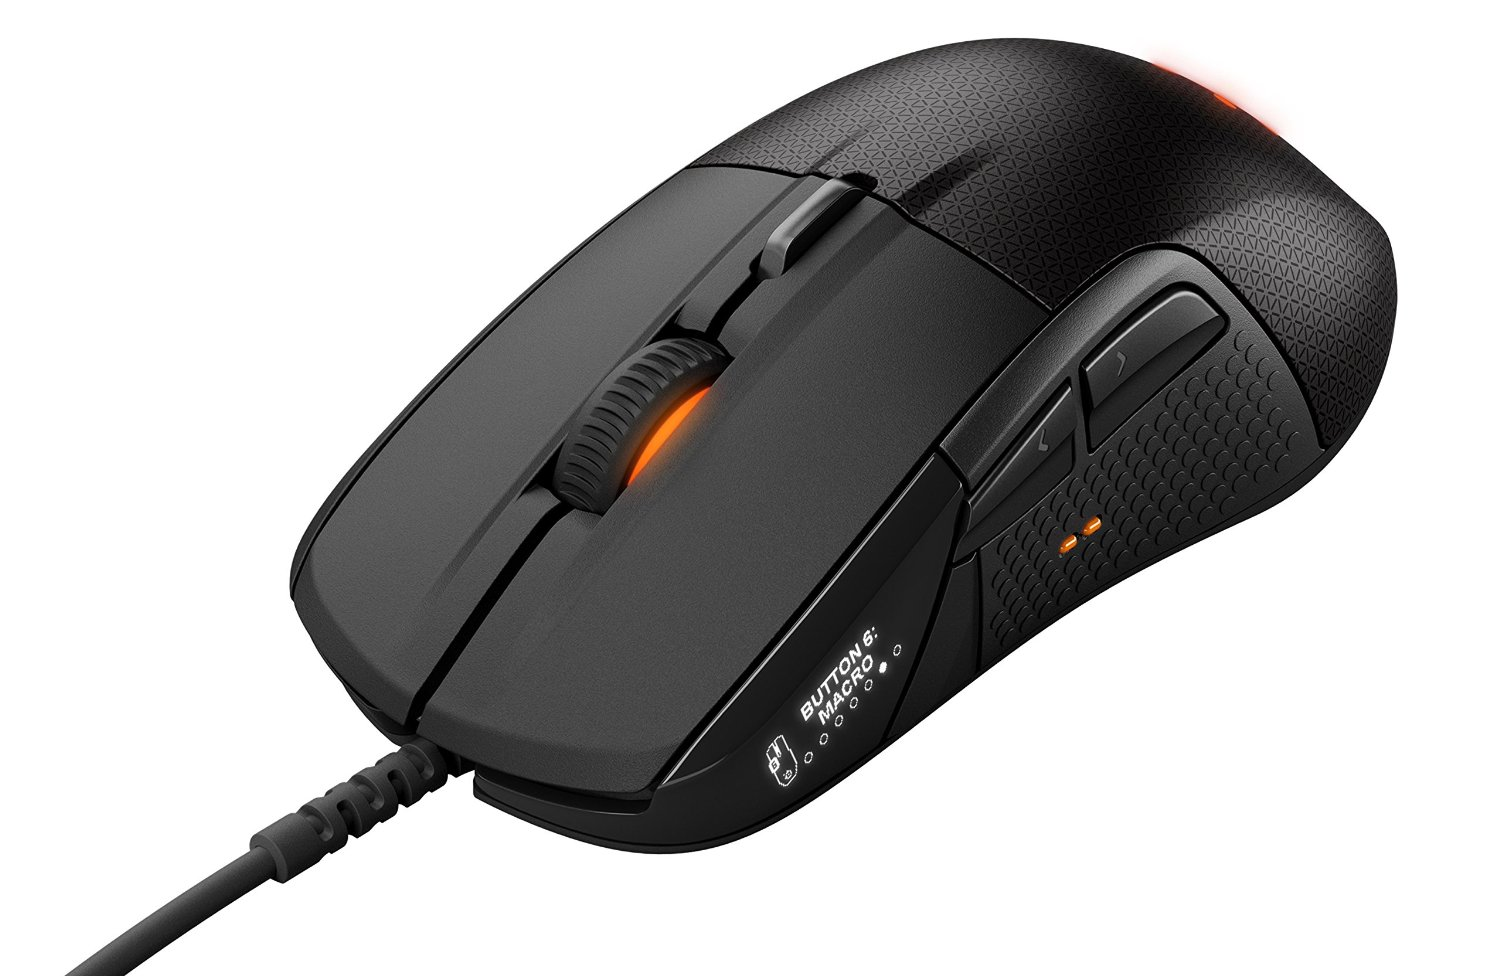 Steel Series Rival 700 – The only mouse which Vibrates